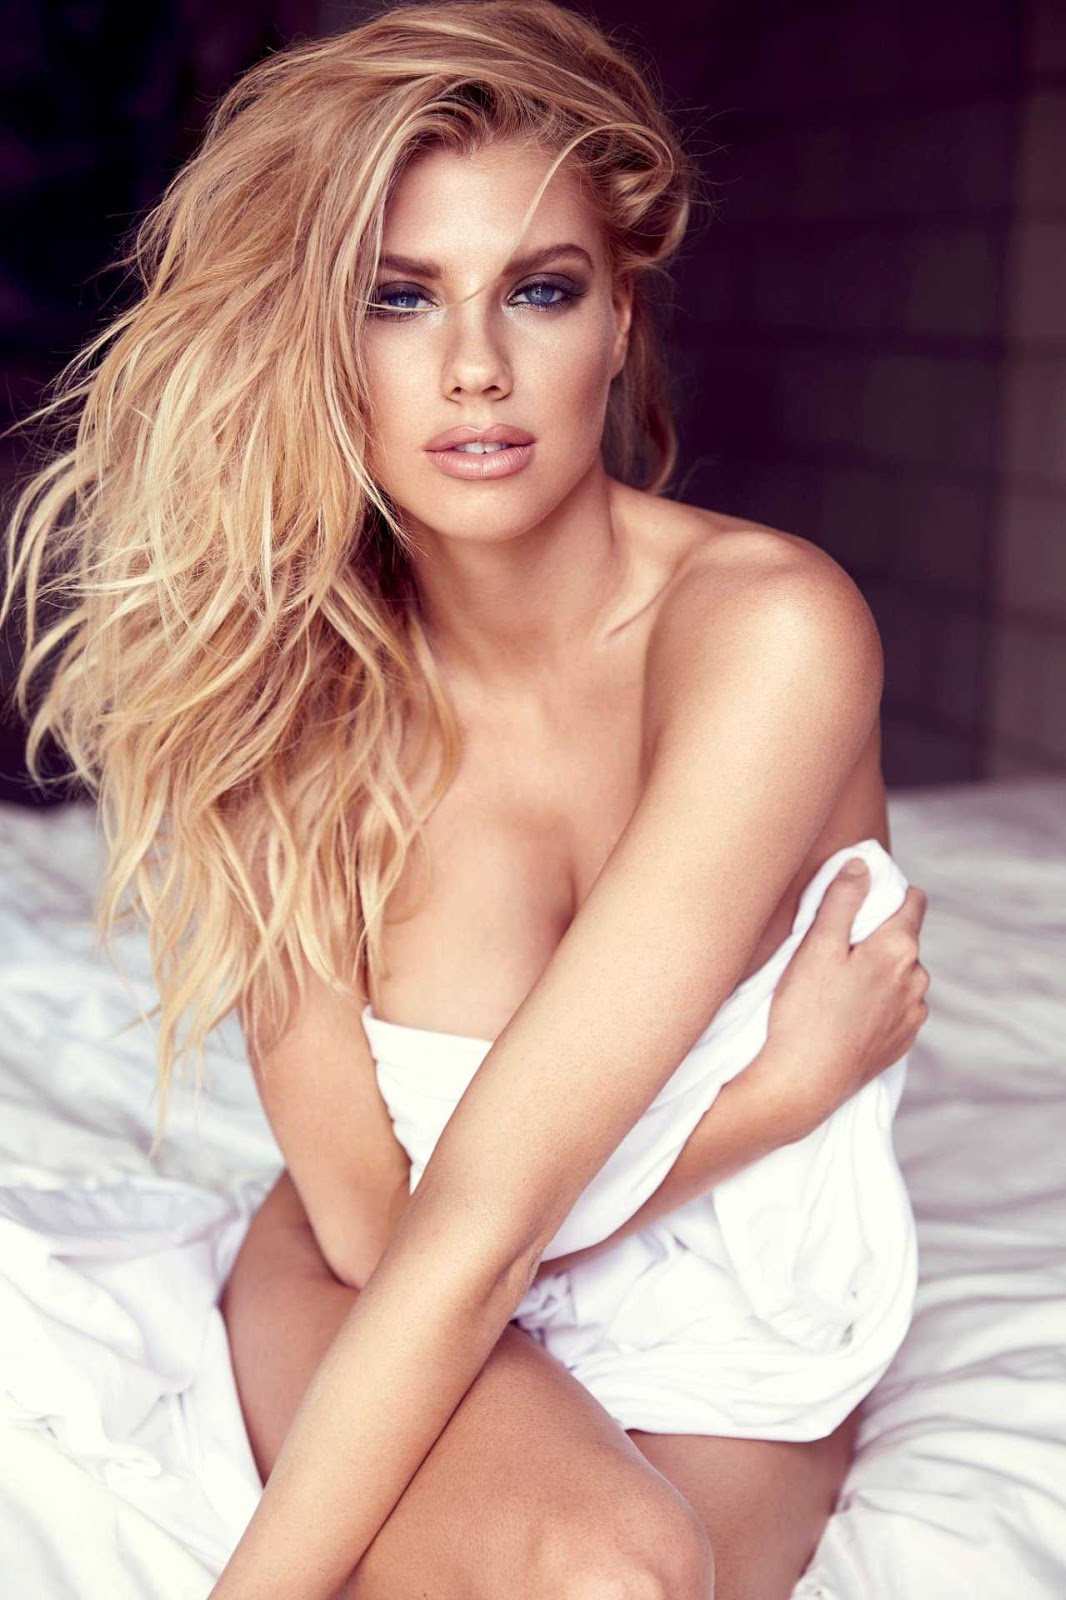 Charlotte McKinney in Self Assignment Photoshoot 2017 by Randall Slavin